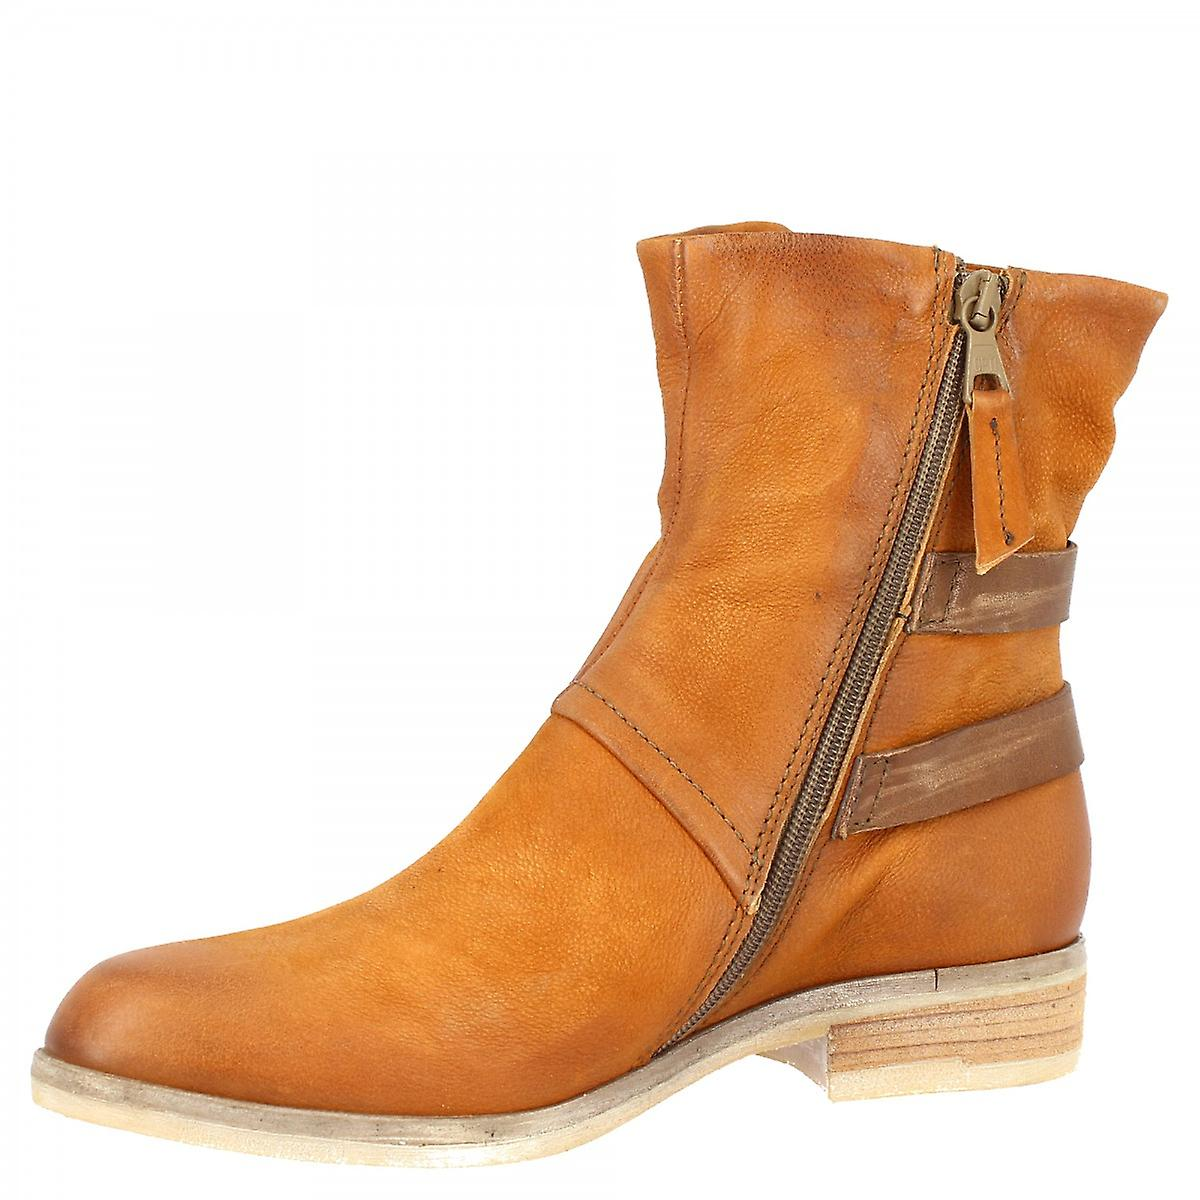 Leonardo Shoes Women's handmade pointed toe ankle boots in tan calf leather with side zip closure